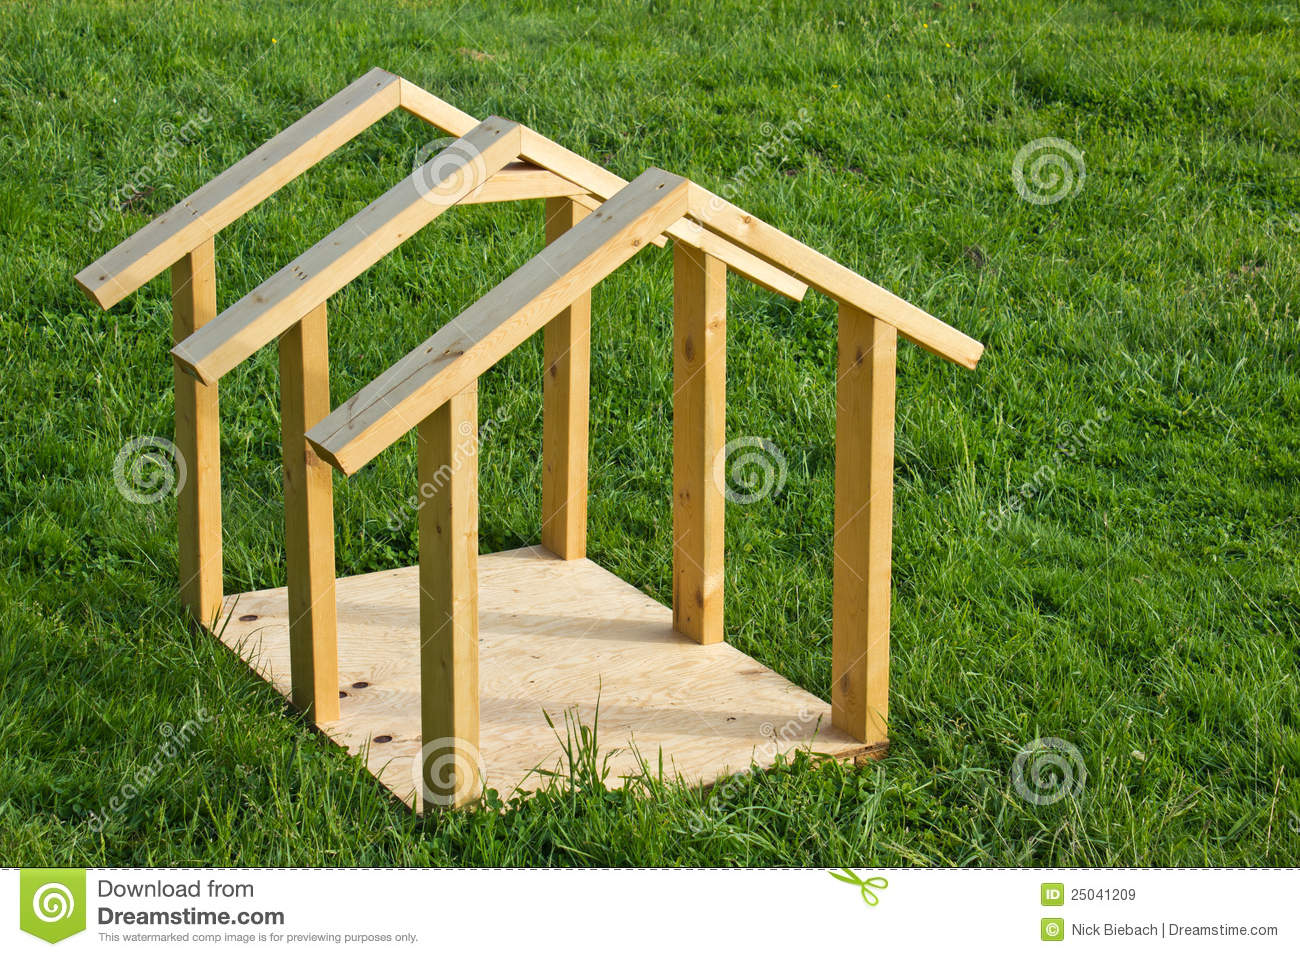 Dog house wood frame stock image image of clean for Build a home online free